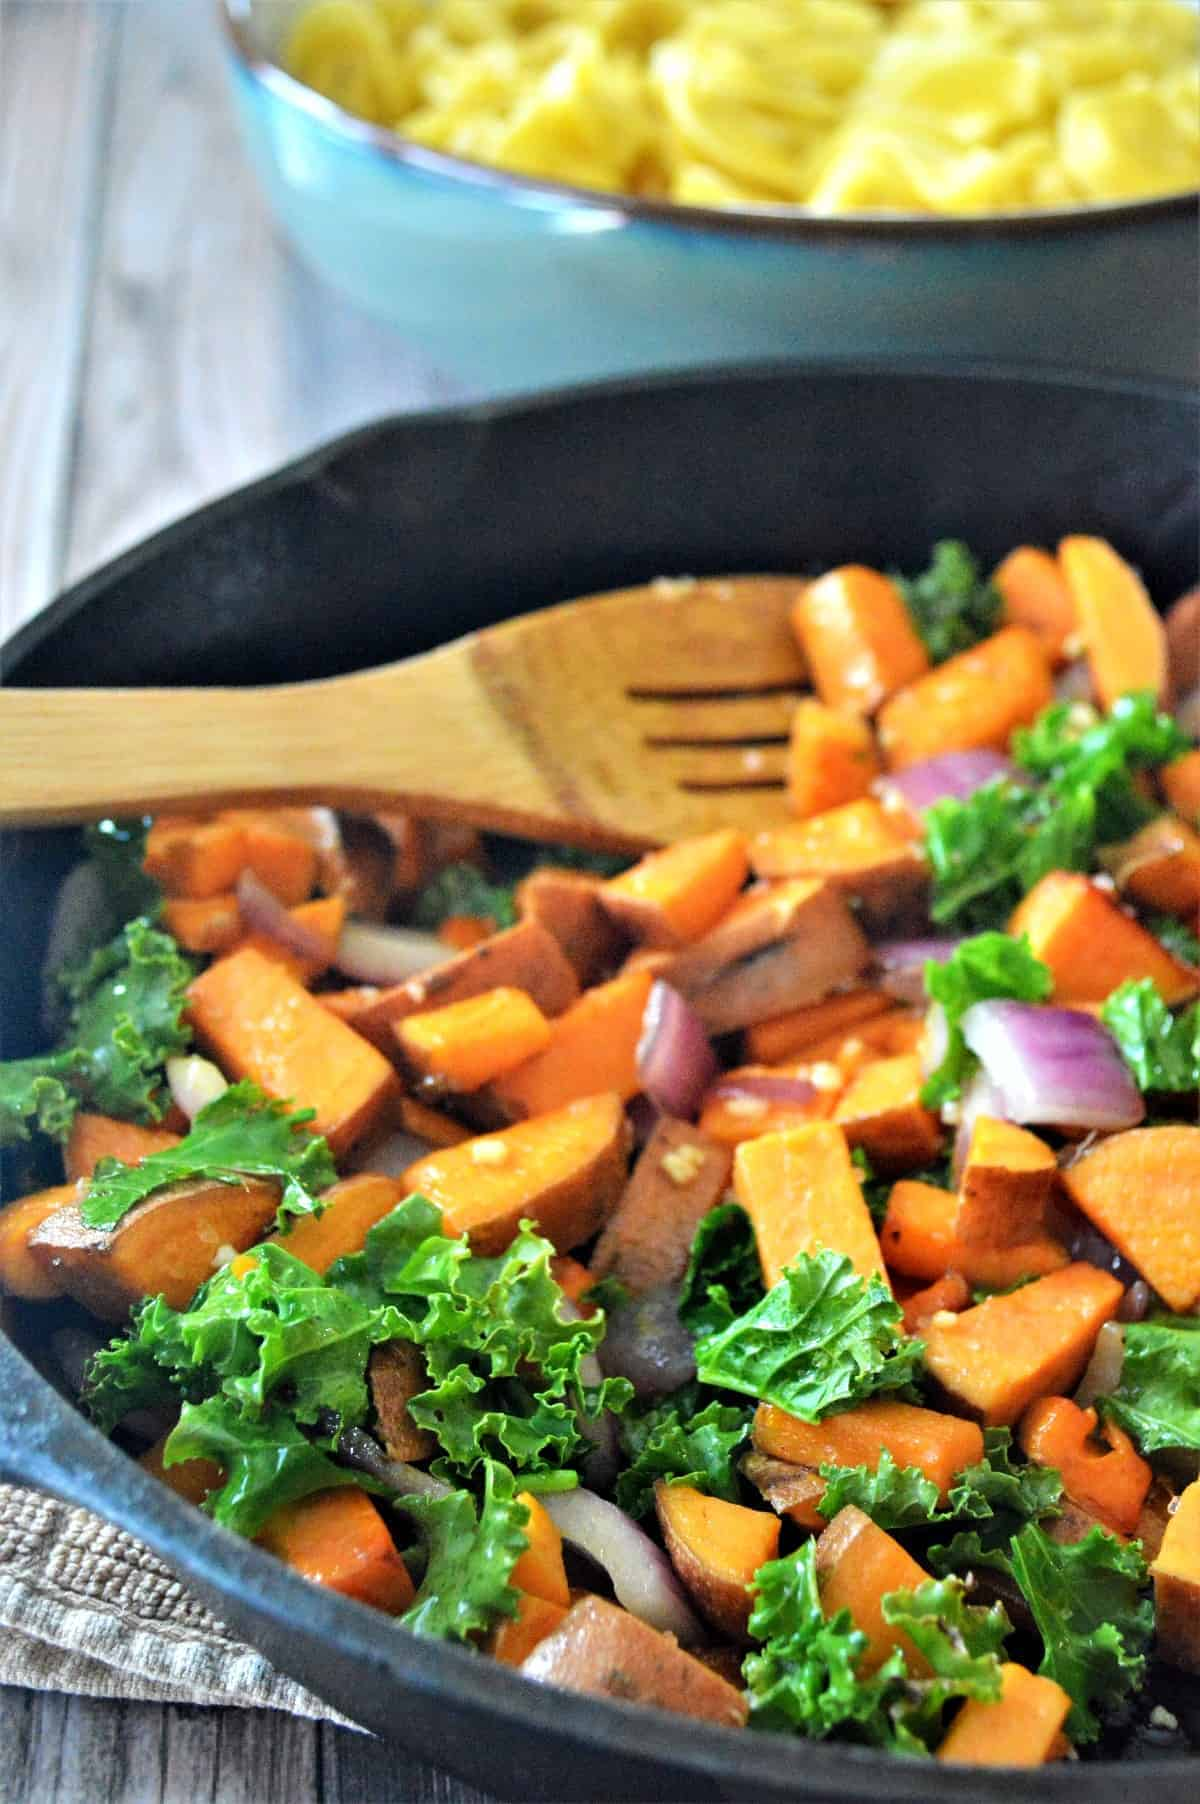 Skillet of vegetables and kale being cooked and stirred with a wooden spoon.